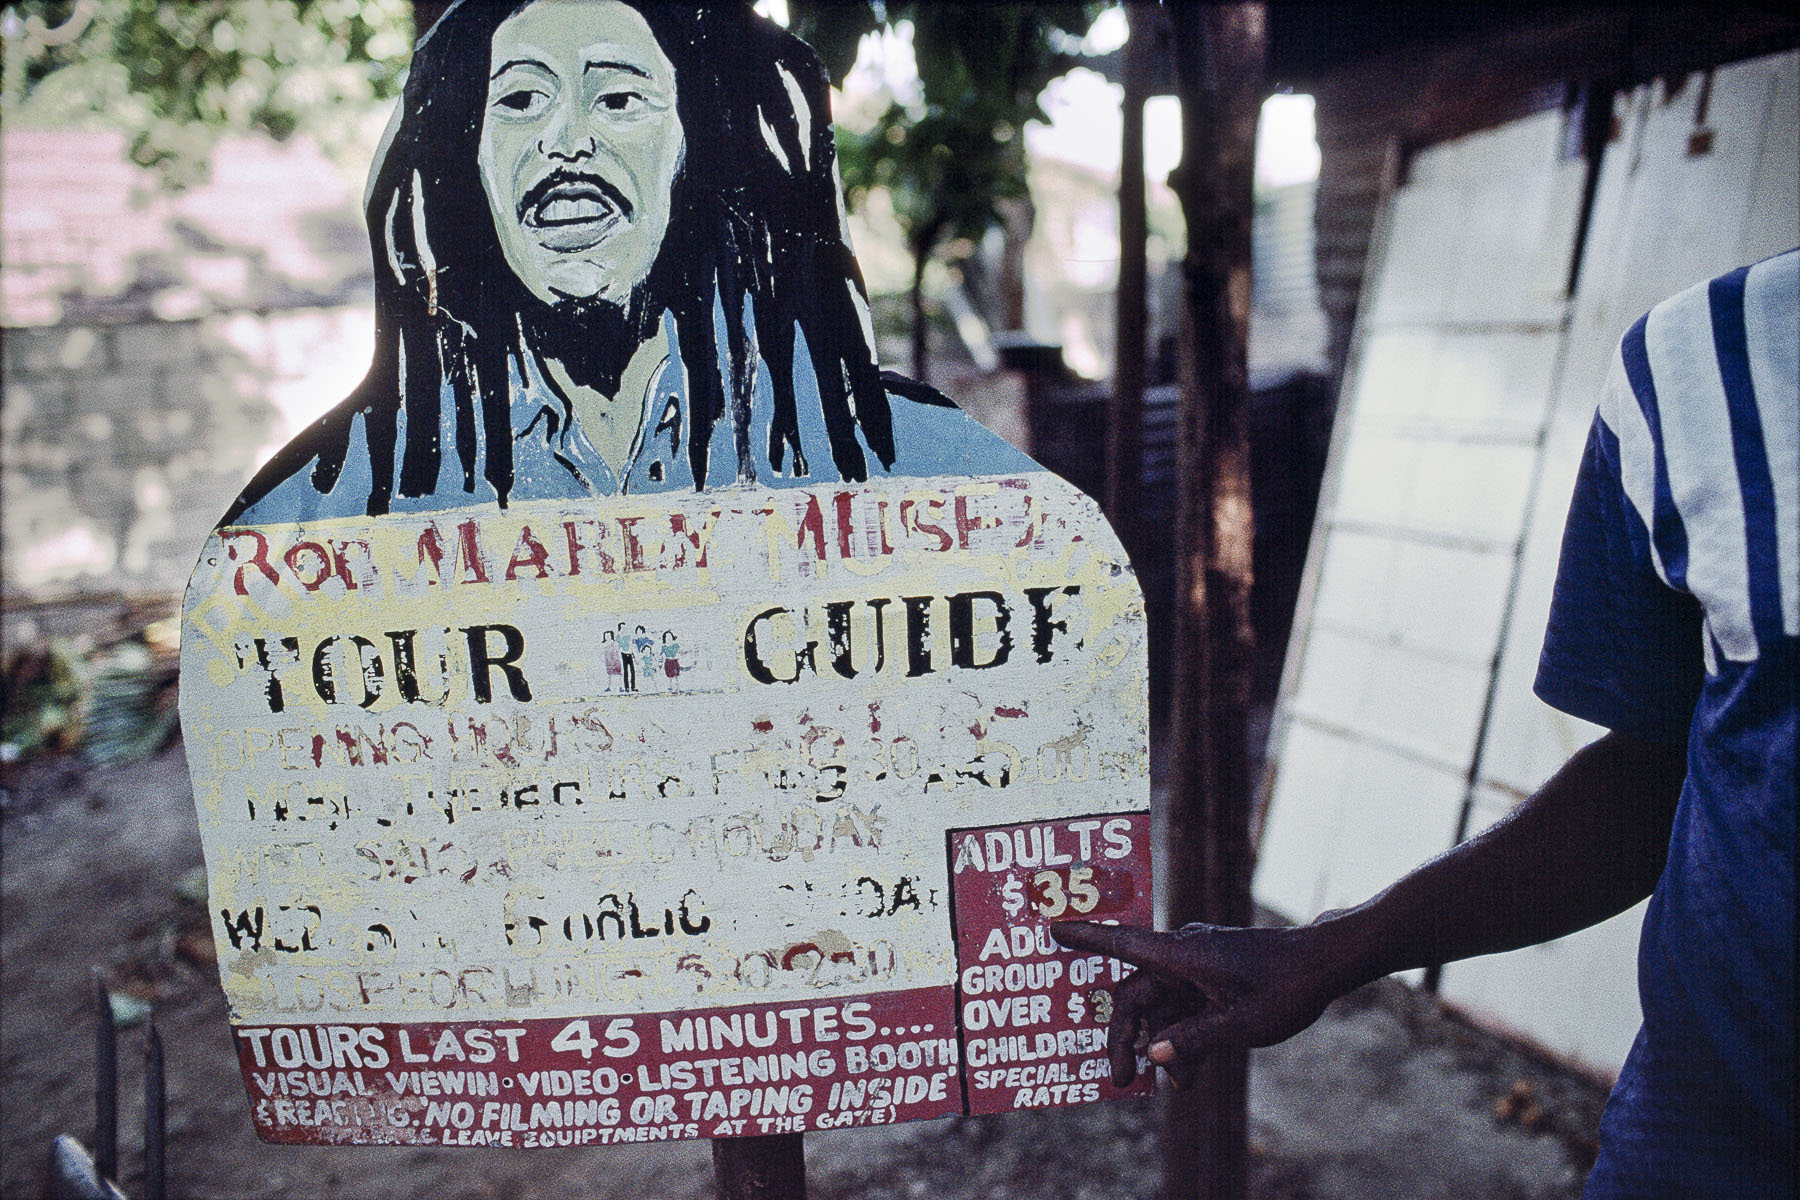 Bob Marley Museum in January 2001